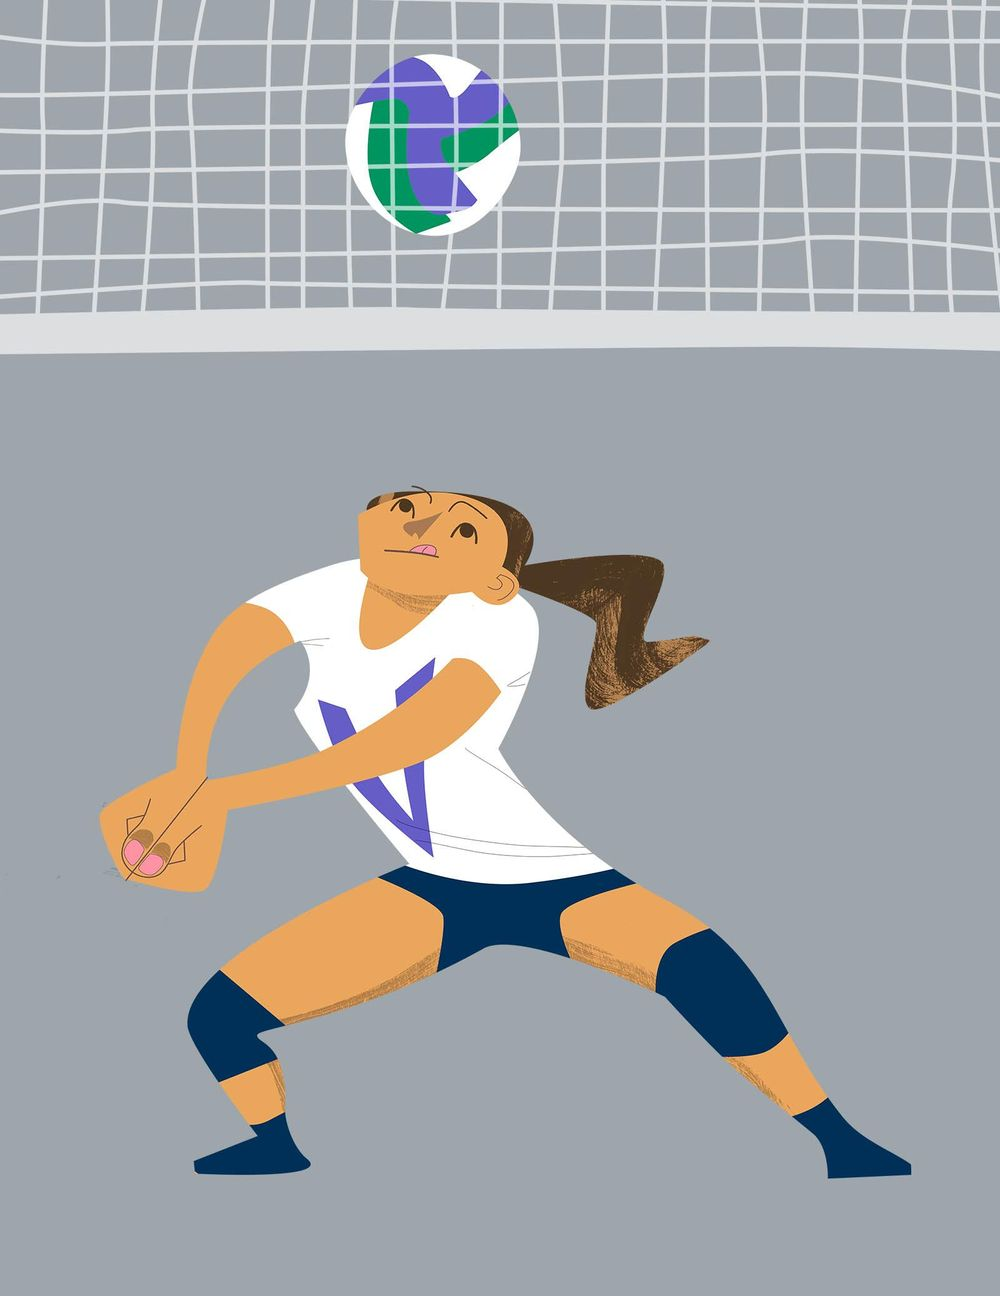 Volleyball Player - image 2 - student project